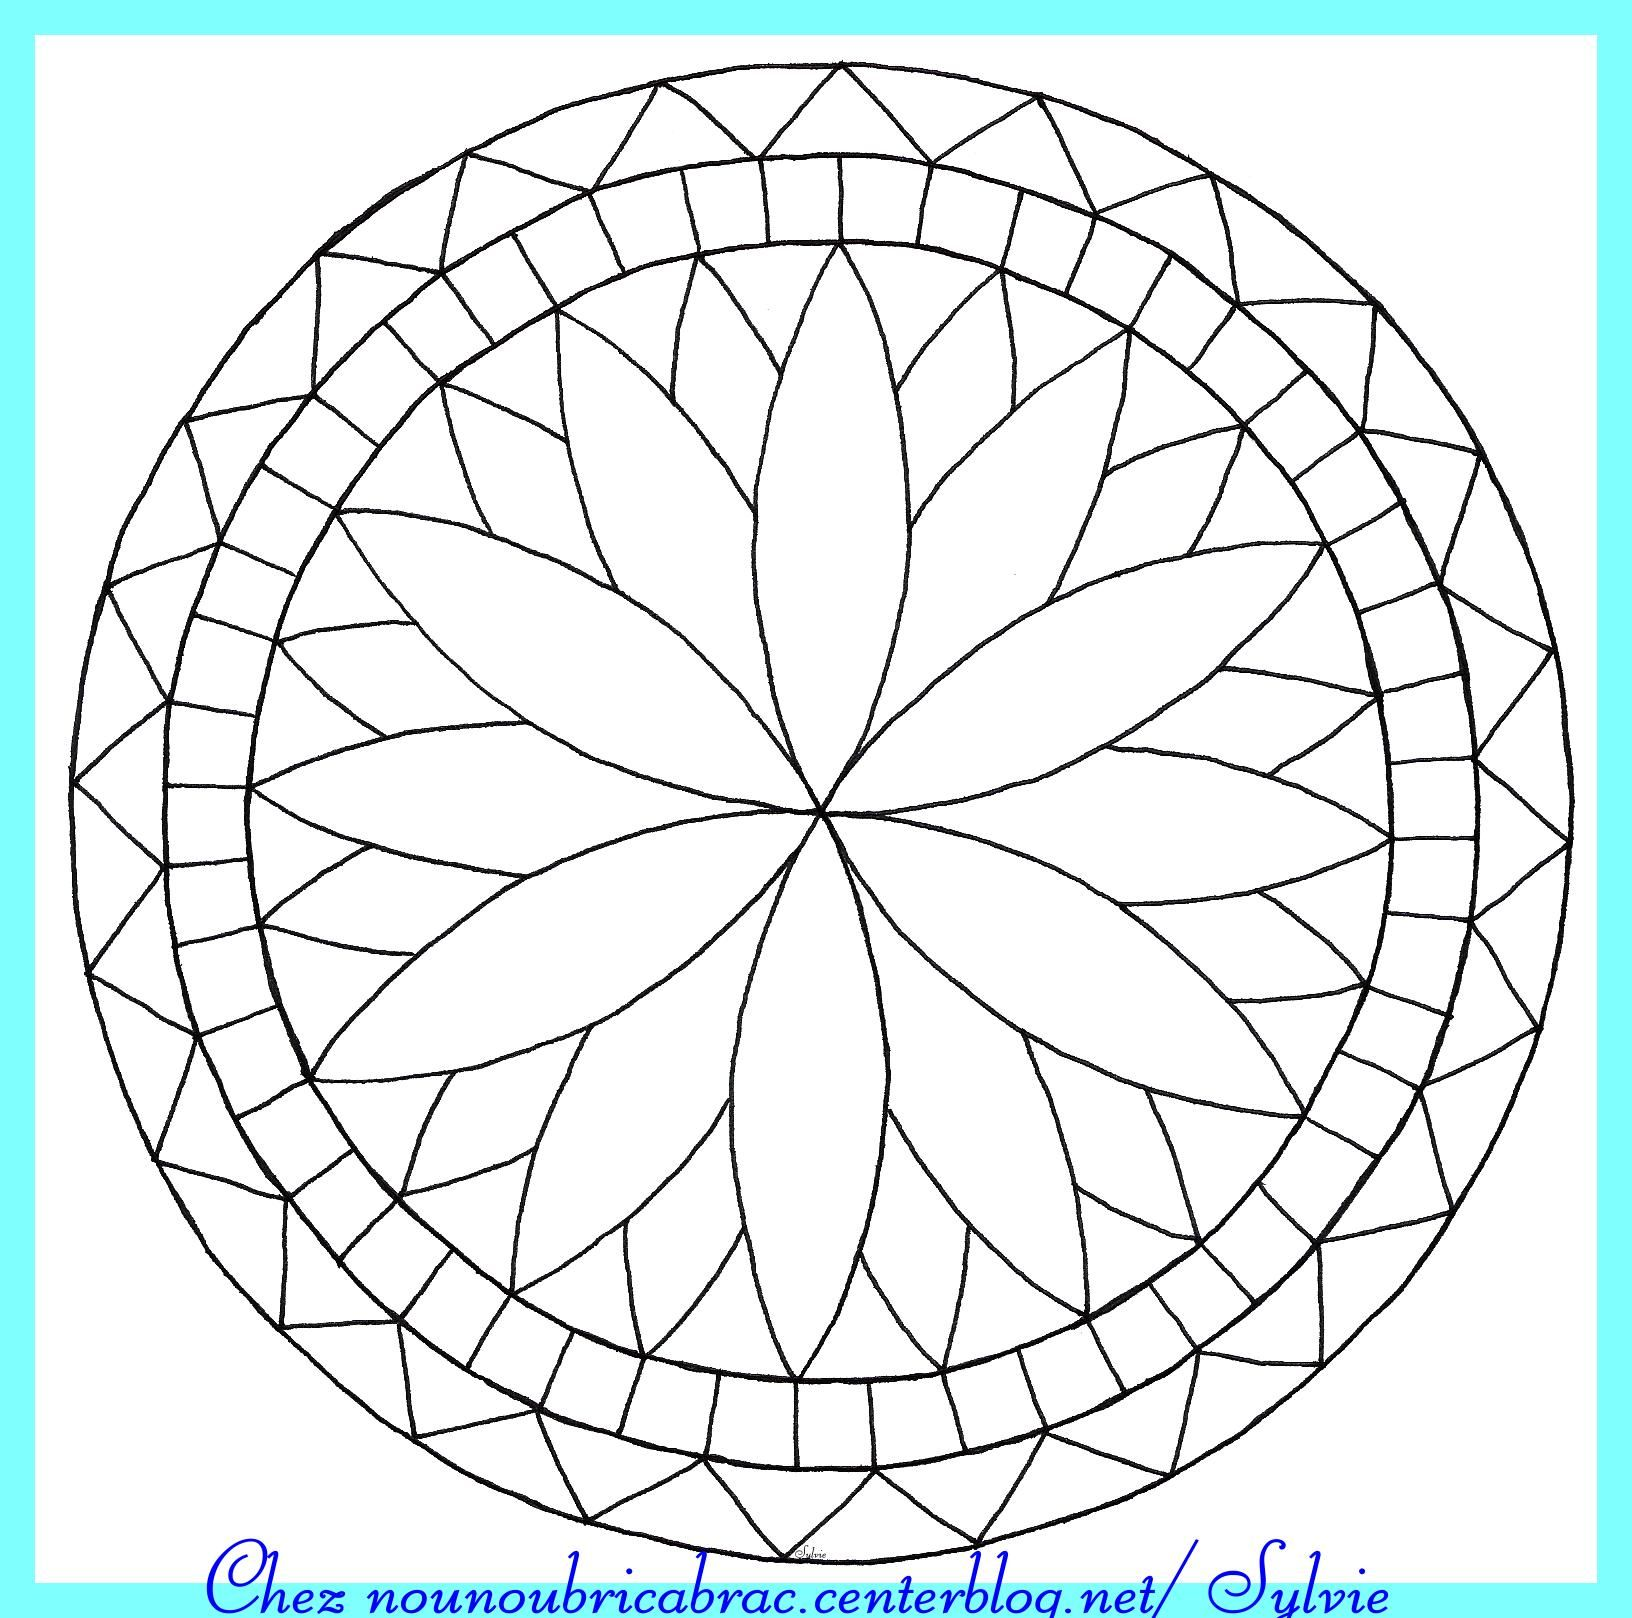 comment dessiner des rosaces rosaces pinterest coloriage de mandala mandalas et coloriage. Black Bedroom Furniture Sets. Home Design Ideas